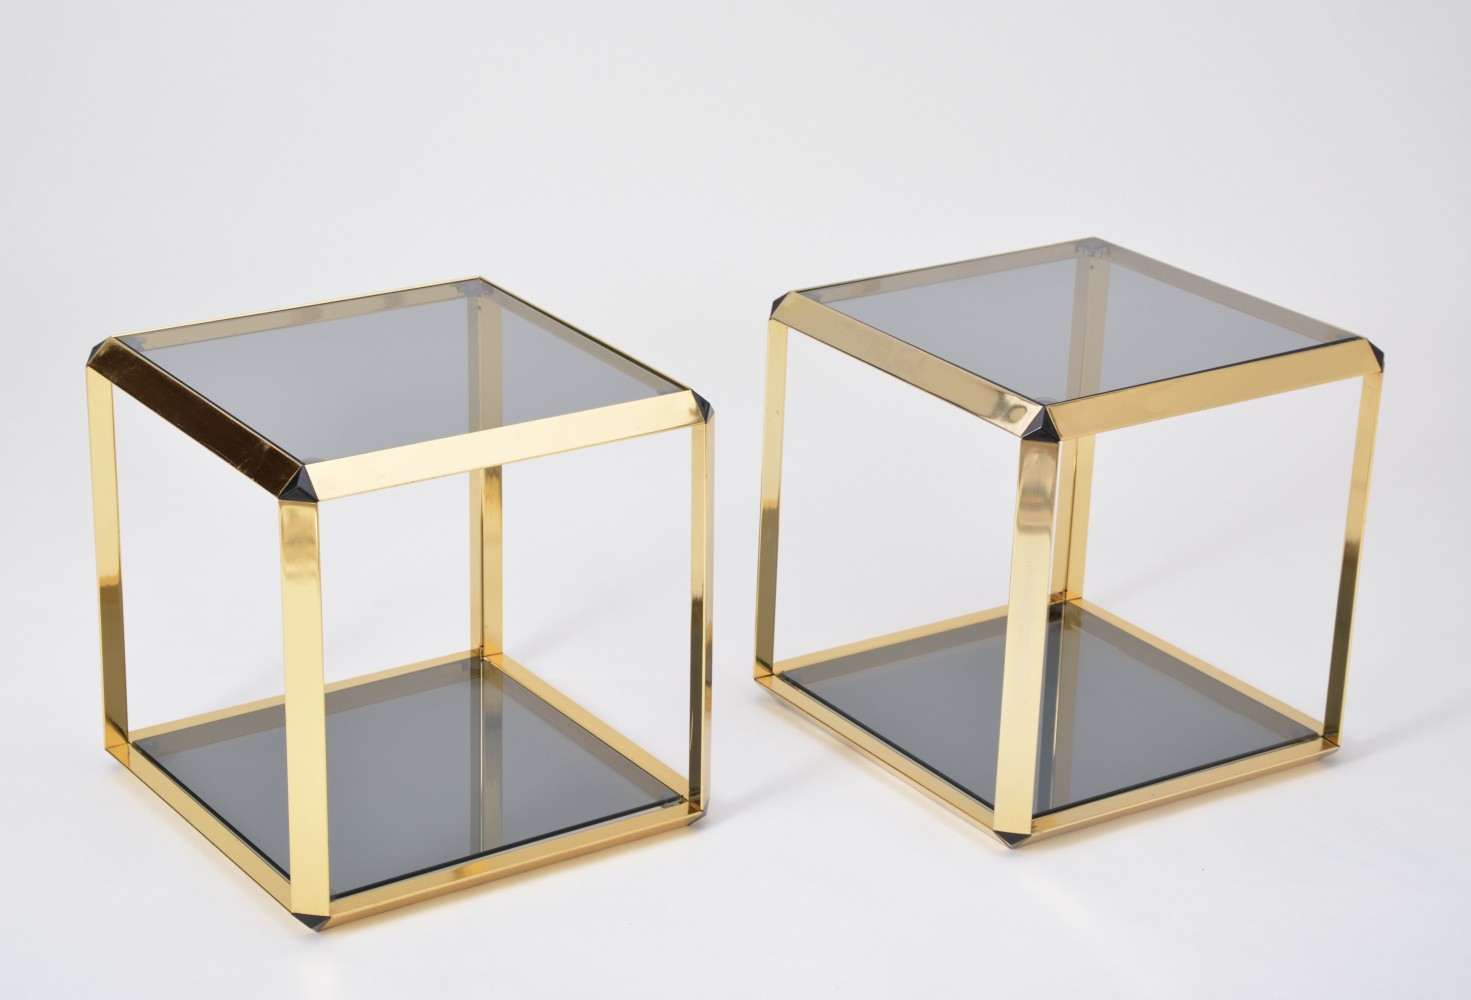 Pair of Gold Colored Side Tables by Alberto Rosselli for Saporiti